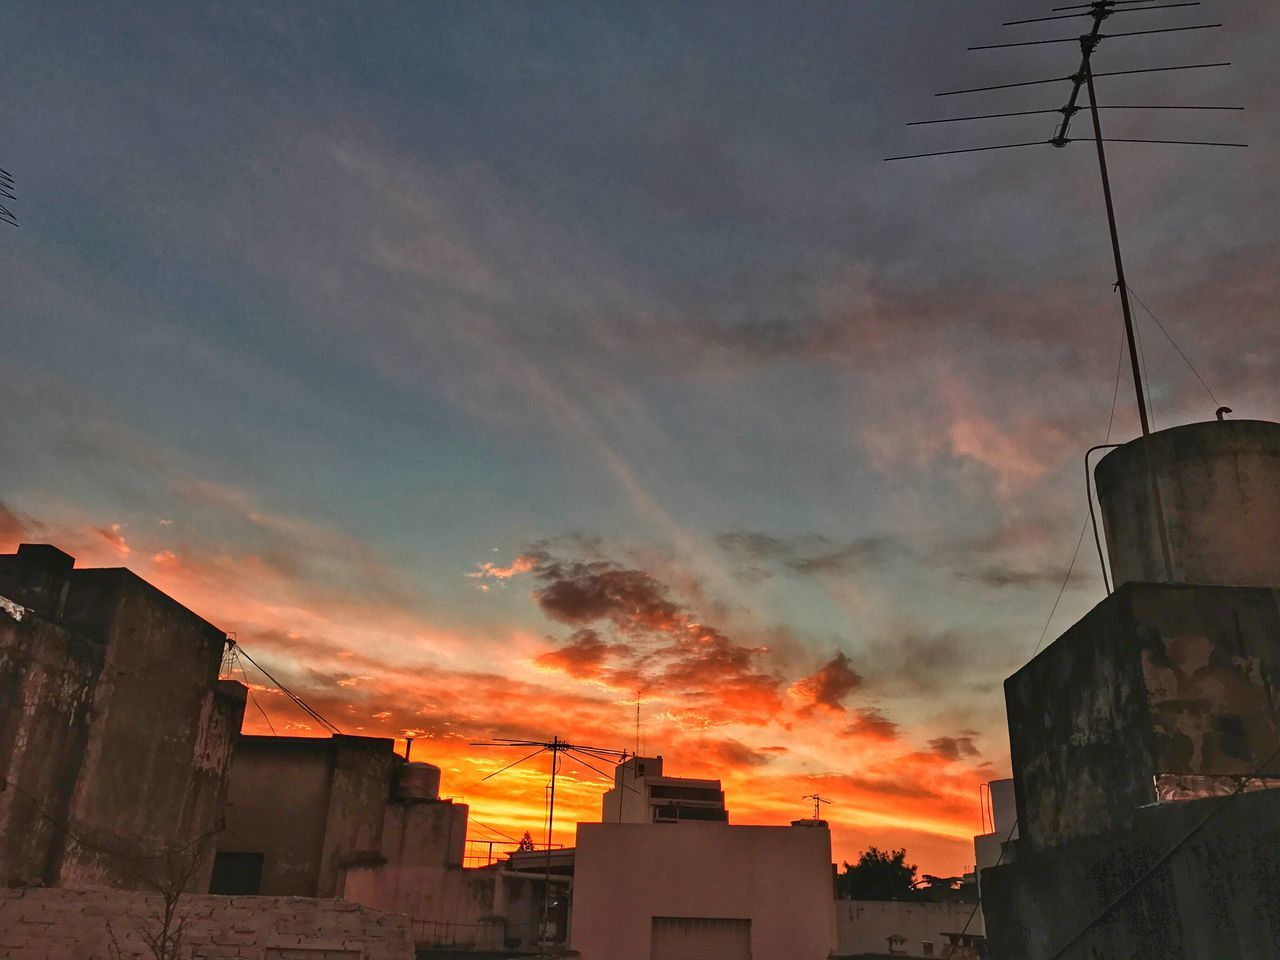 Building Exterior Sky Built Structure Architecture Sunset Cloud - Sky City Outdoors No People Nature Day Cityscapes Cityscapes_collection Terraza From The Window HDR Hdr_Collection